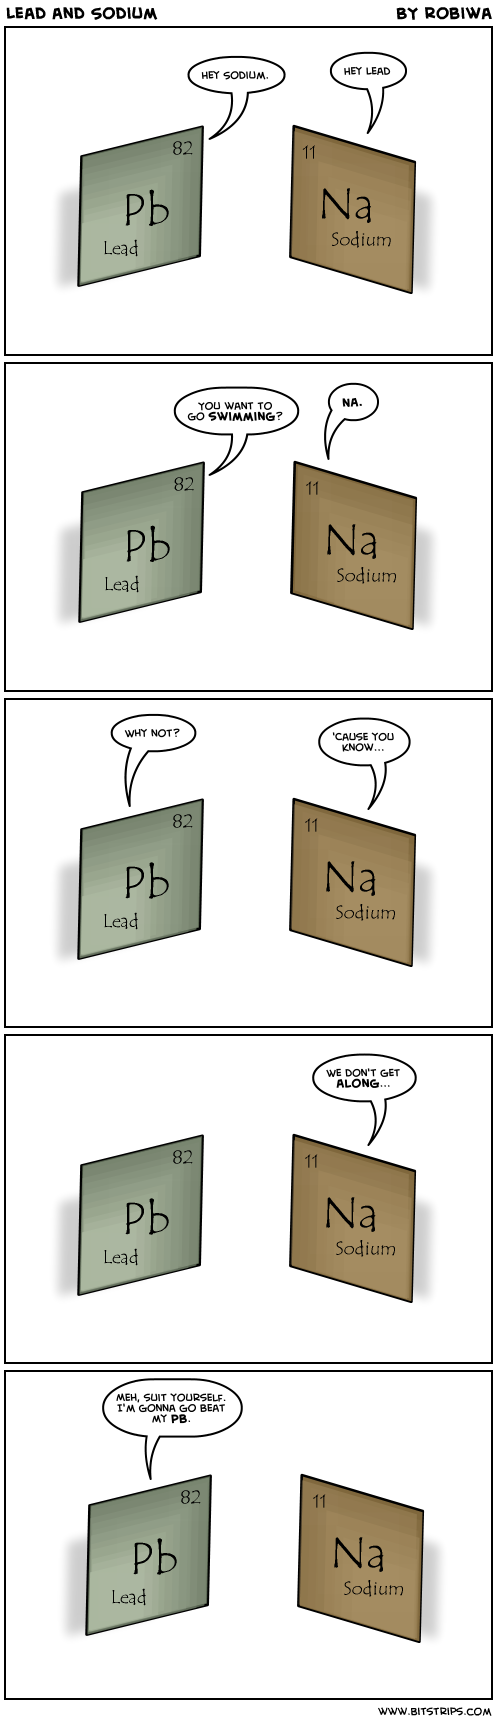 Lead and Sodium